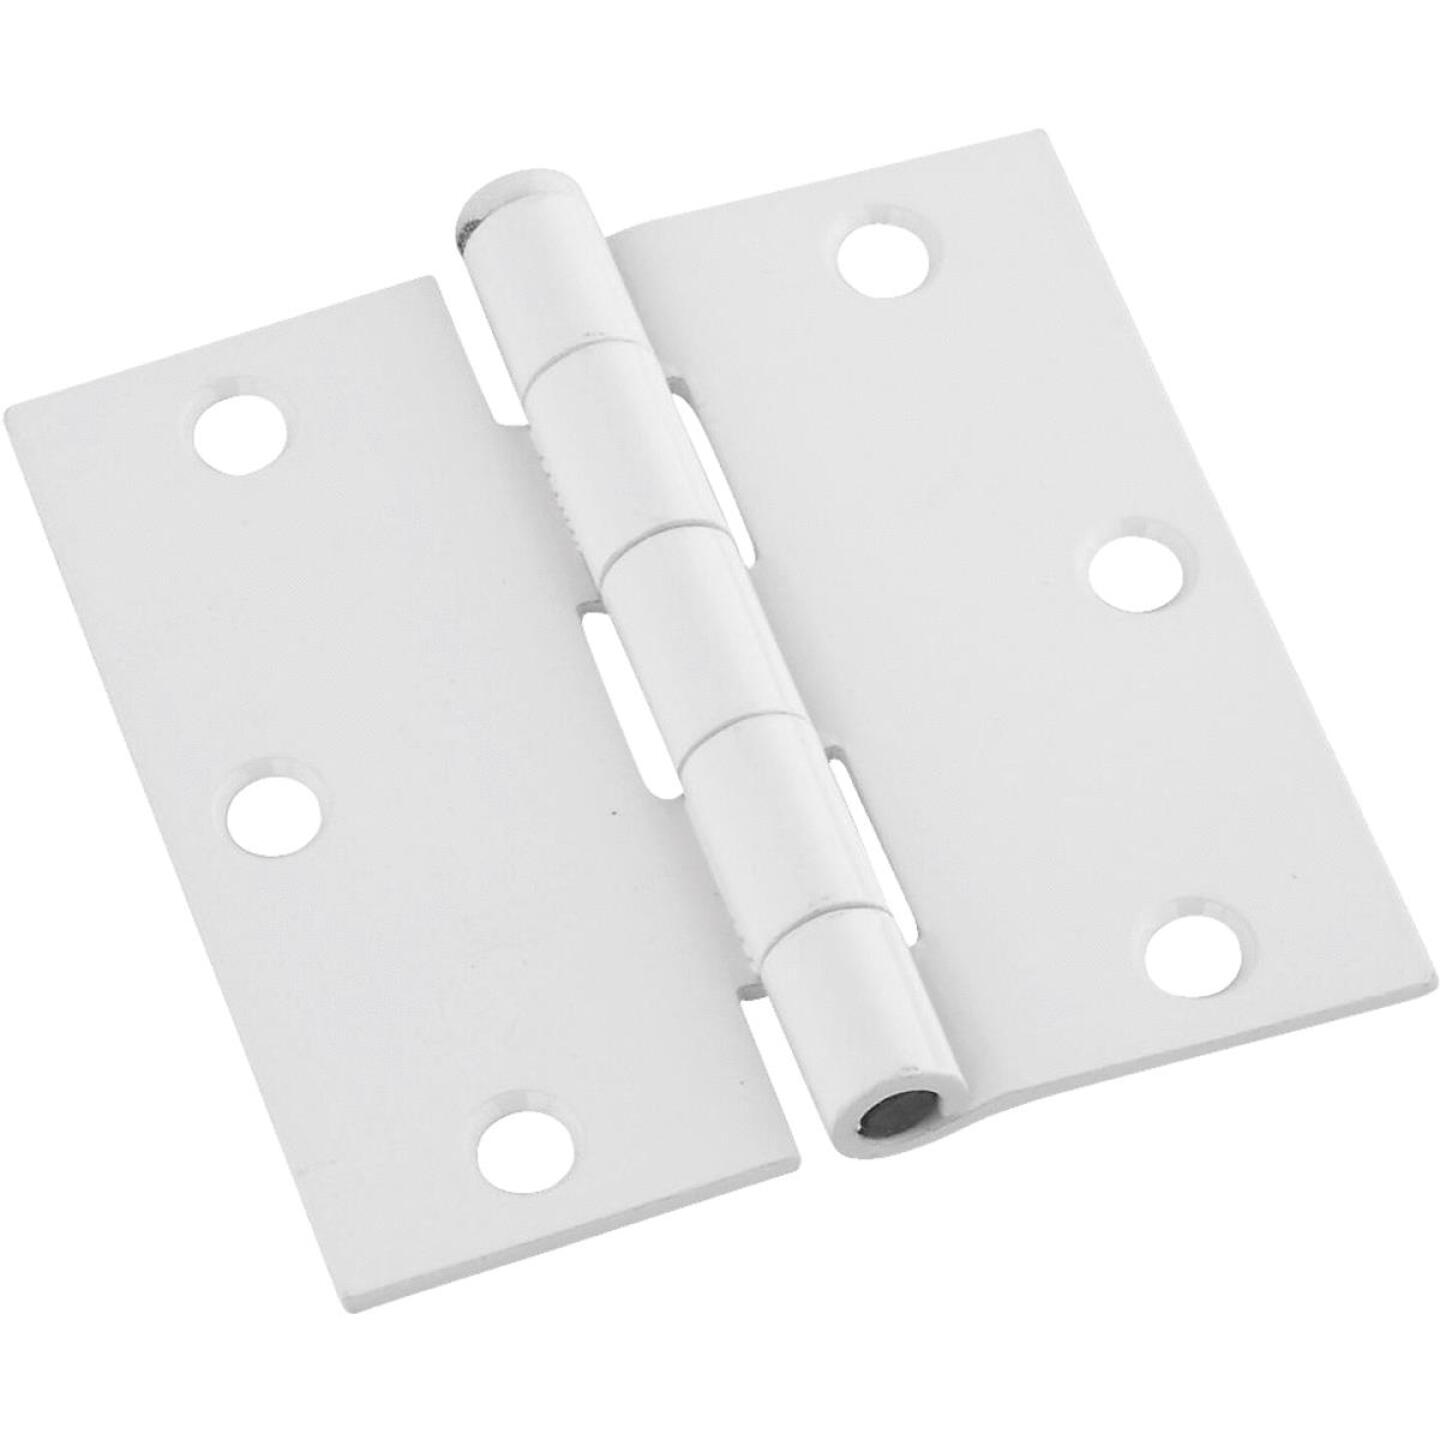 National 3-1/2 In. Square White Door Hinge (3-Pack) Image 1